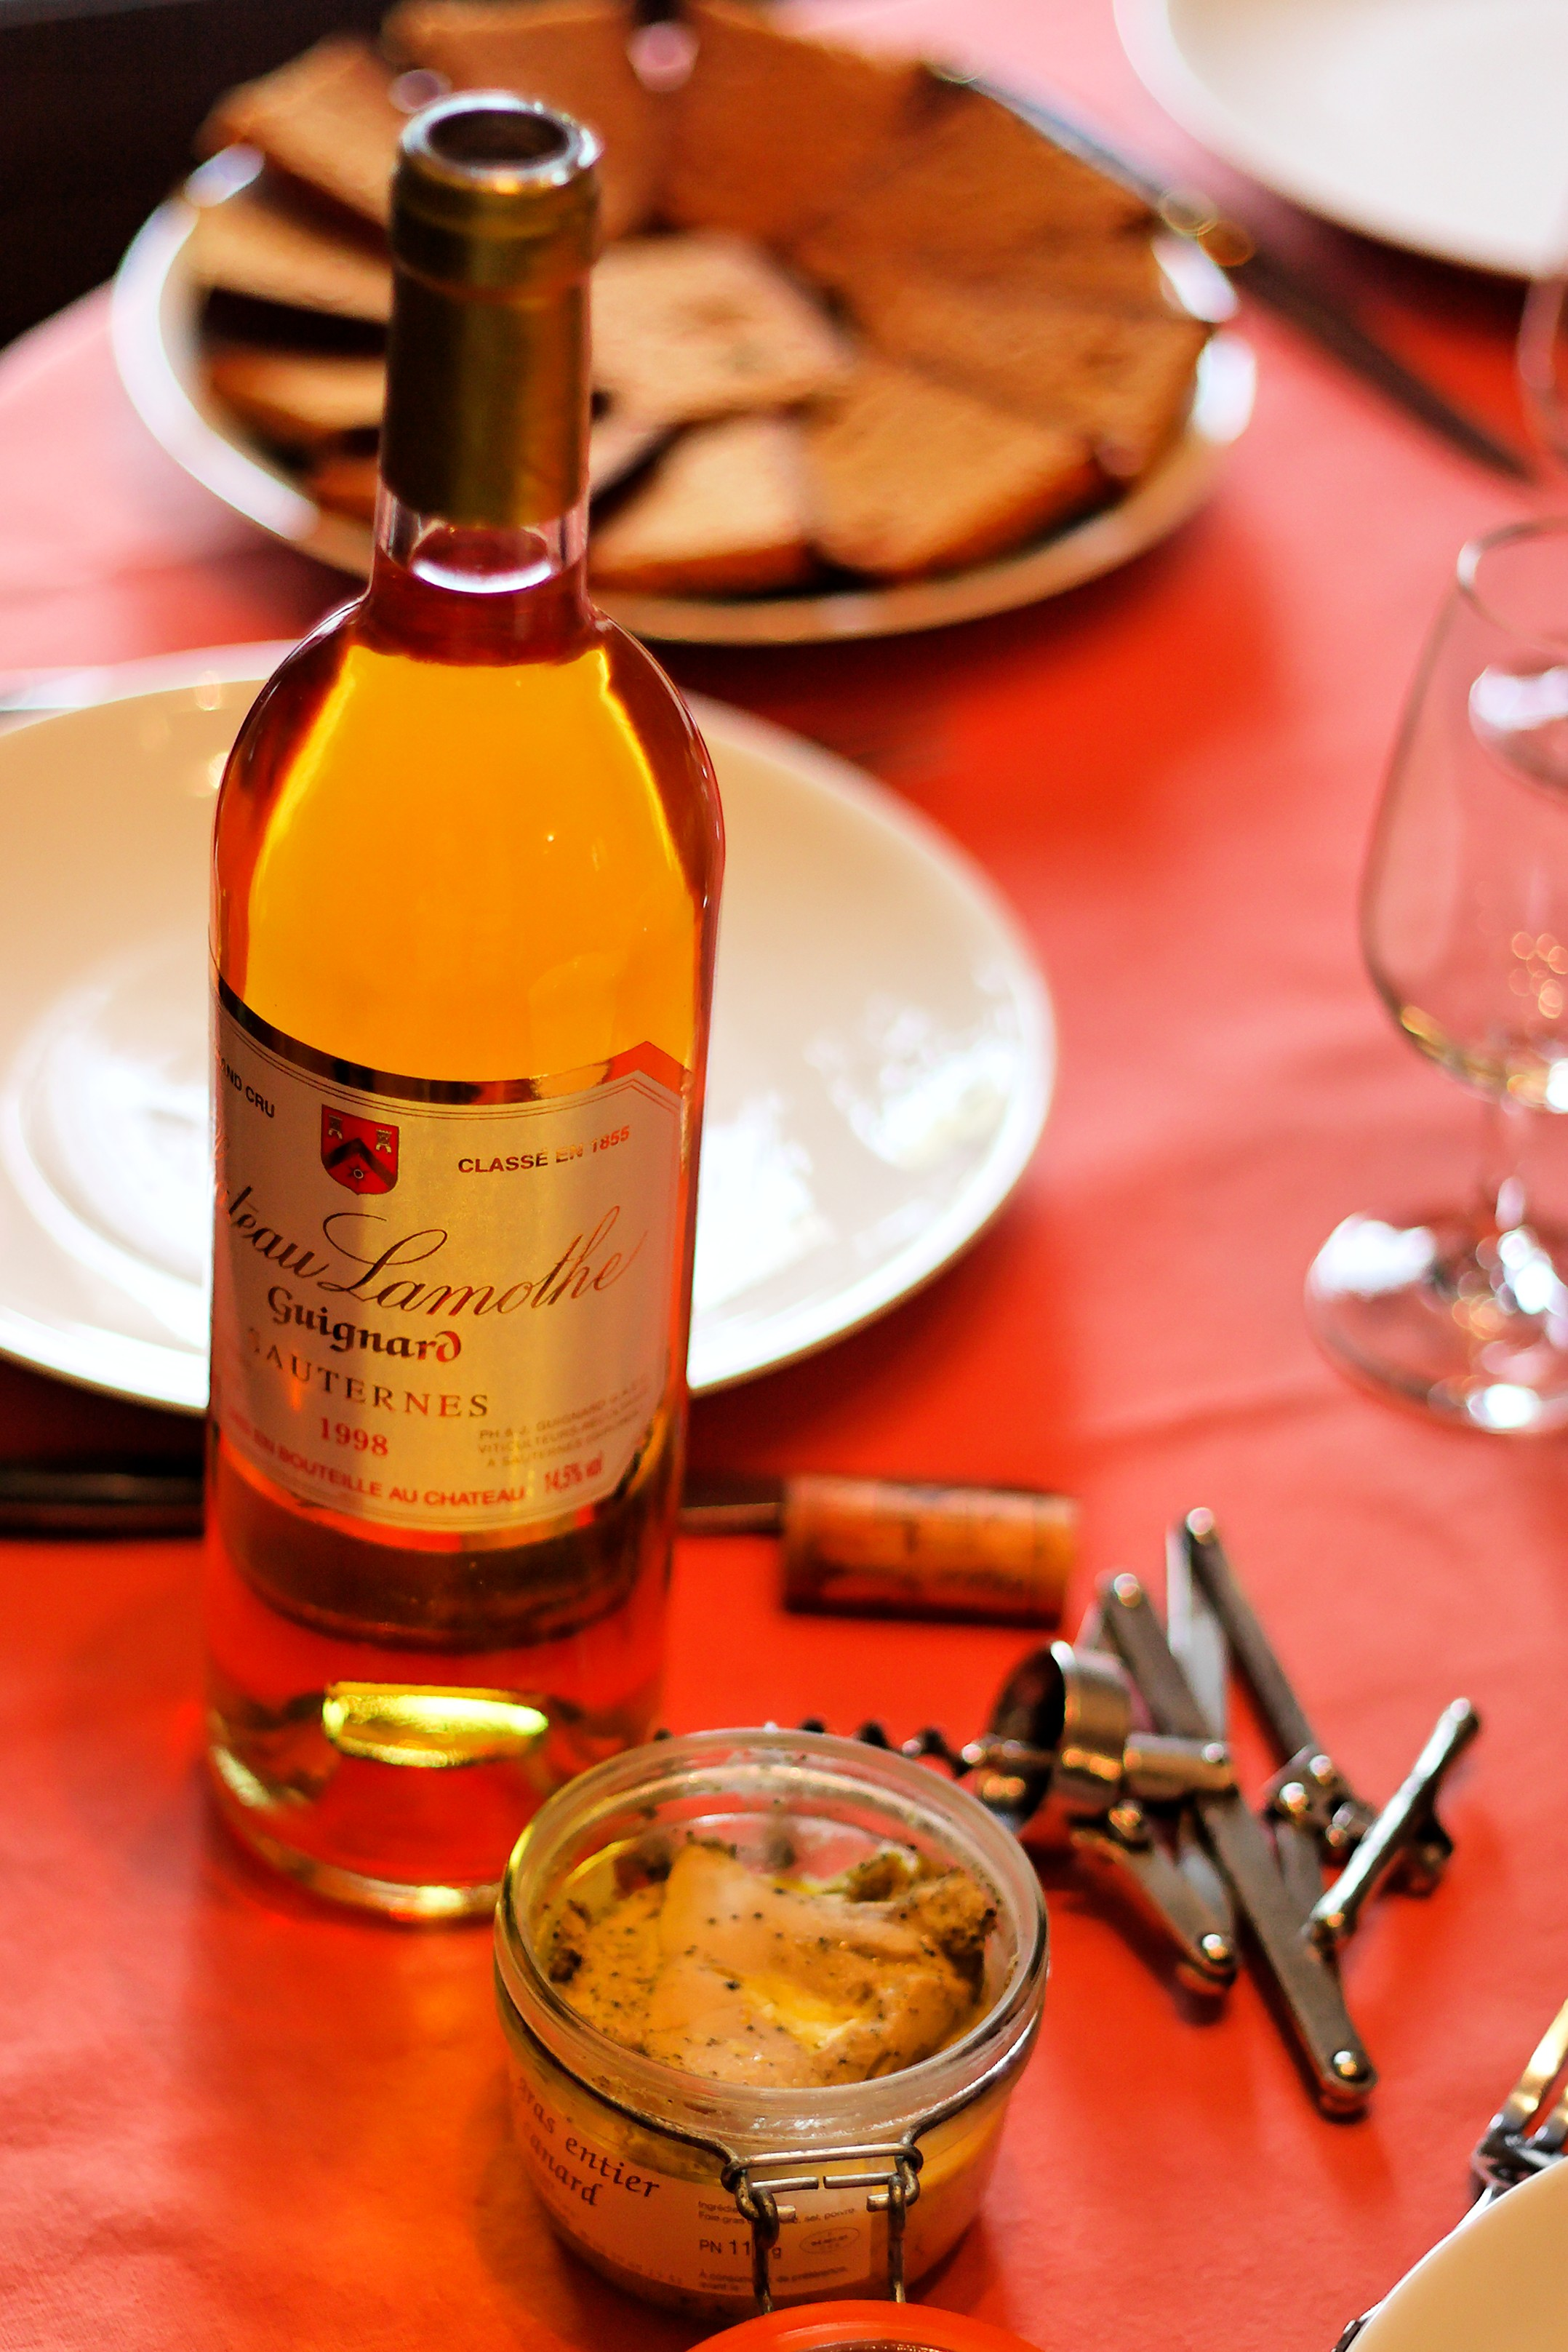 http://upload.wikimedia.org/wikipedia/commons/9/9d/Foie_gras_with_sauternes.jpg